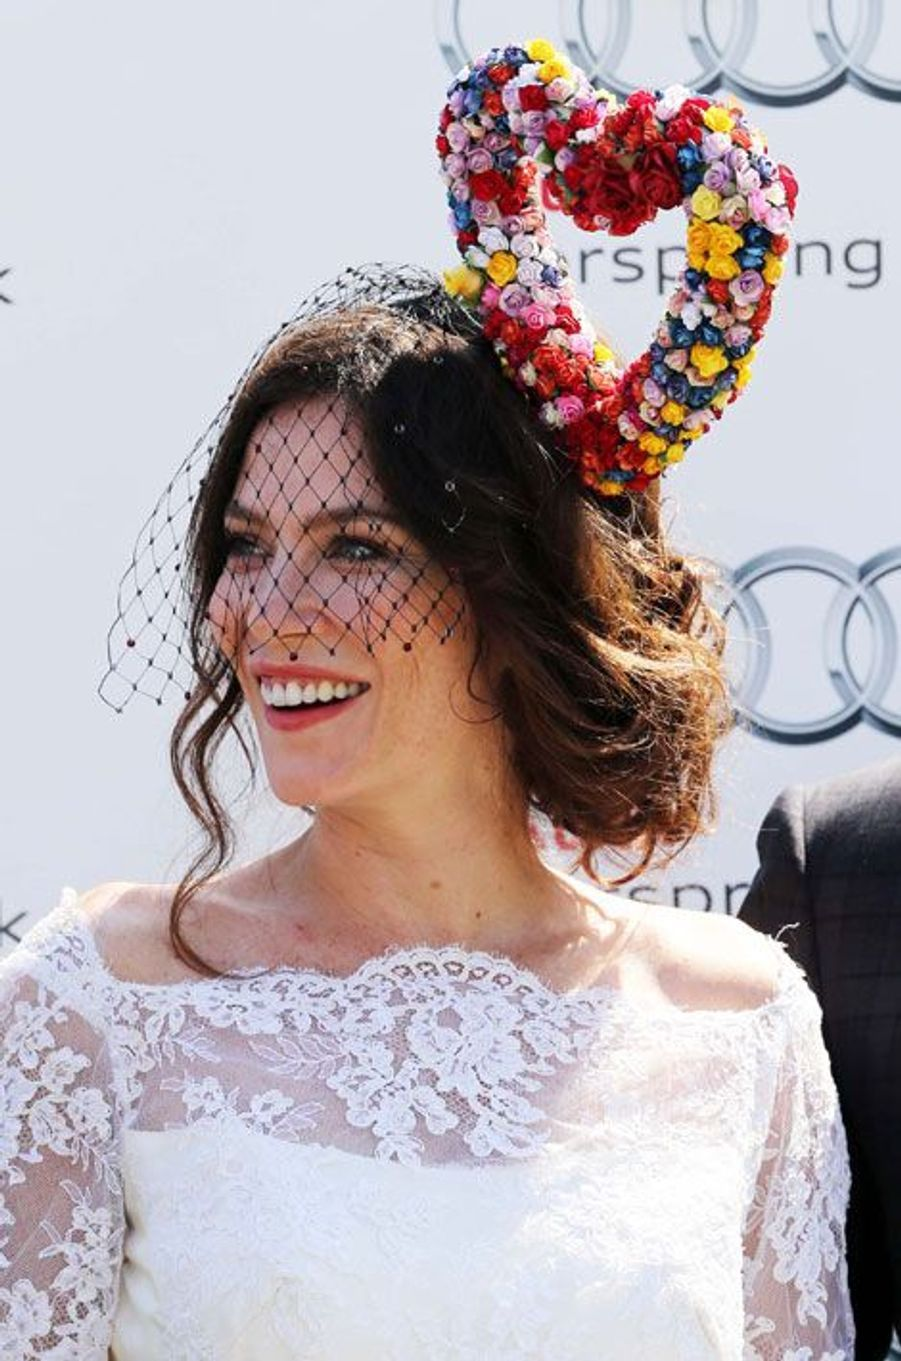 L'actrice anglaise Anna Friel